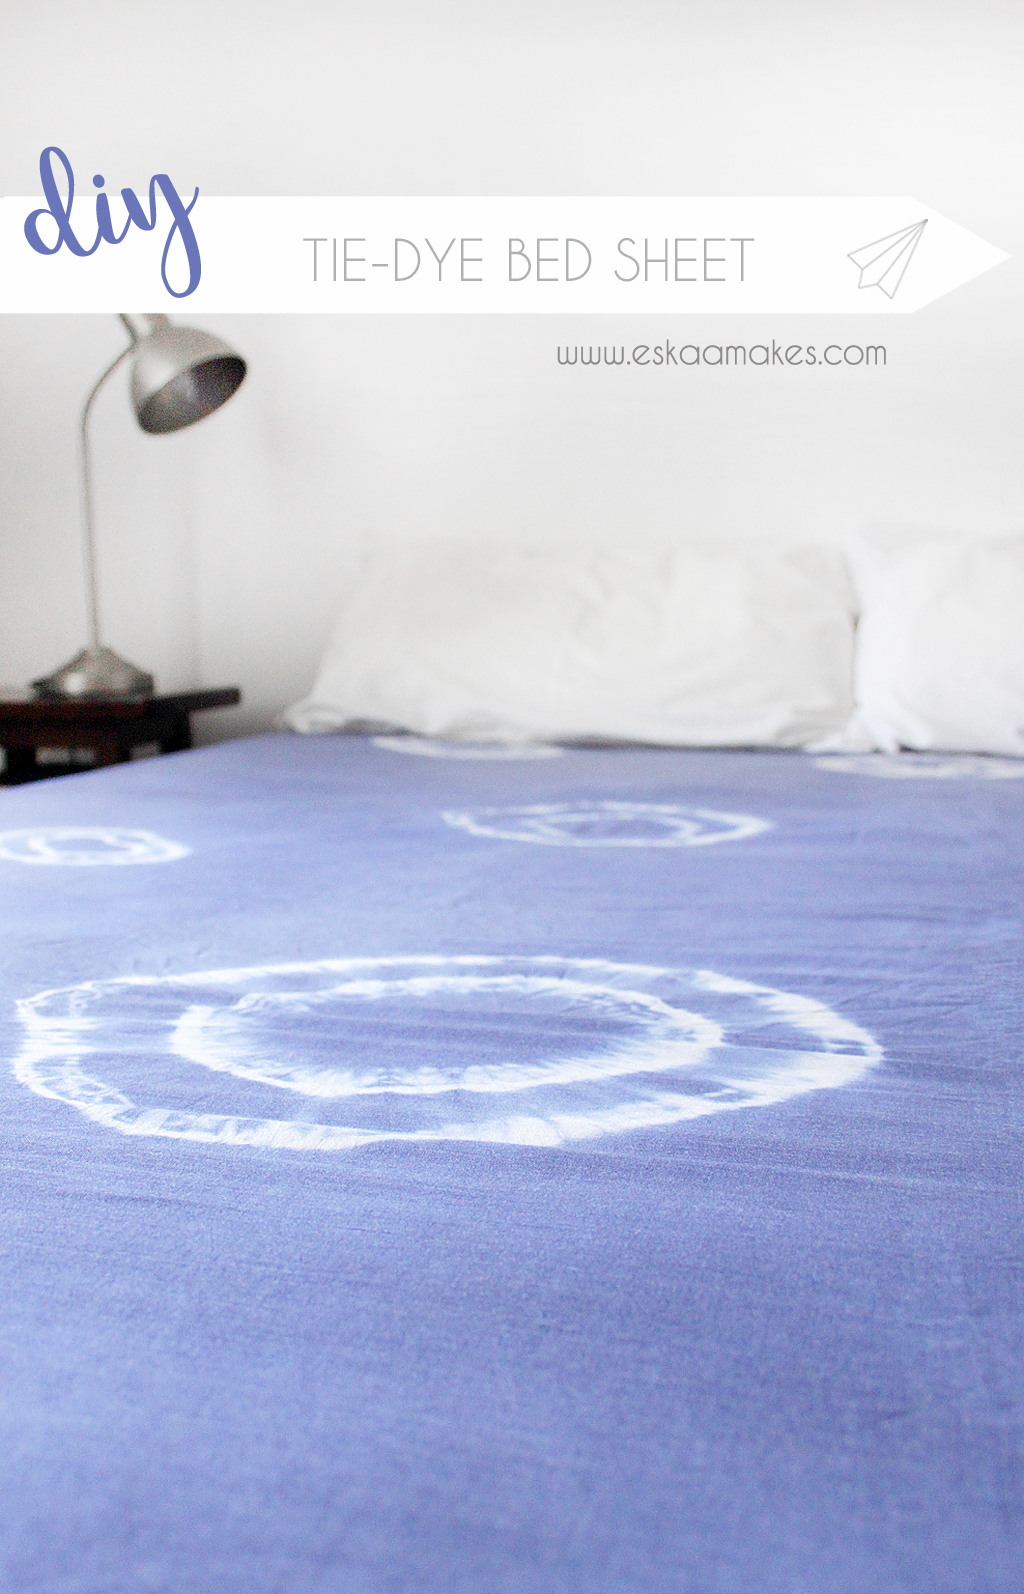 tie-dyed-bed-sheet-title